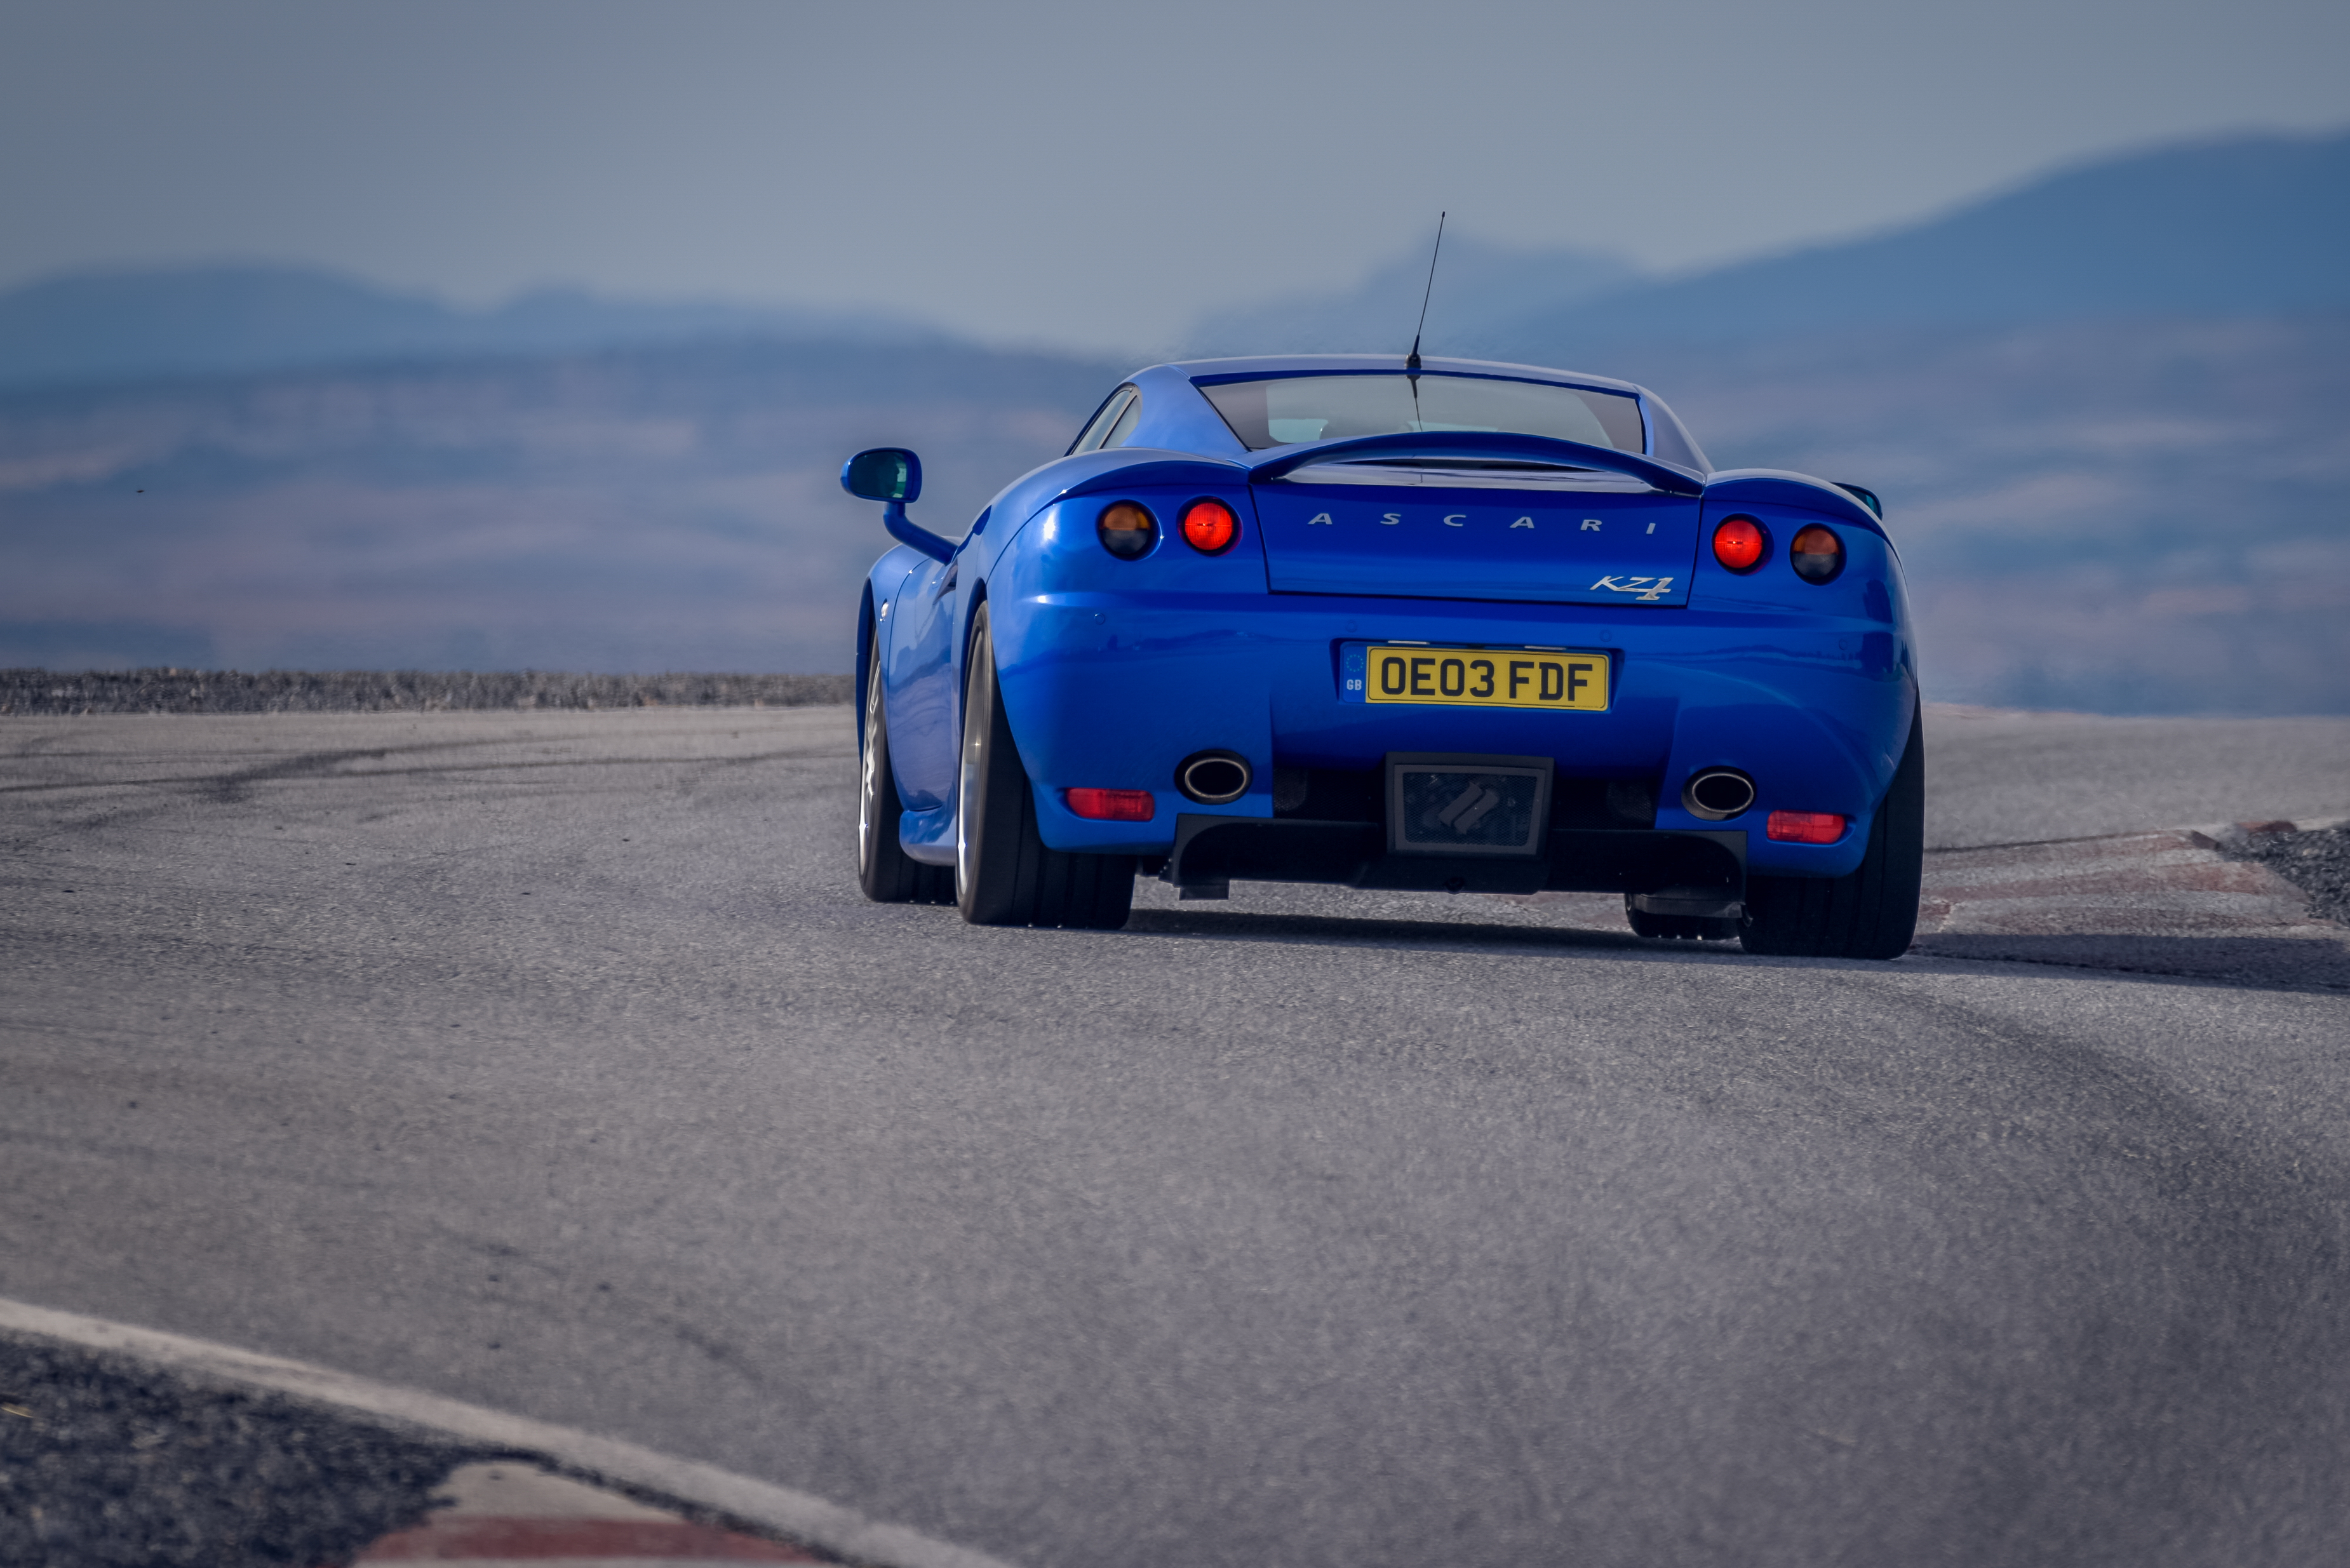 ONE OF FIVE. Driving the elusive Ascari KZ1 supercar.